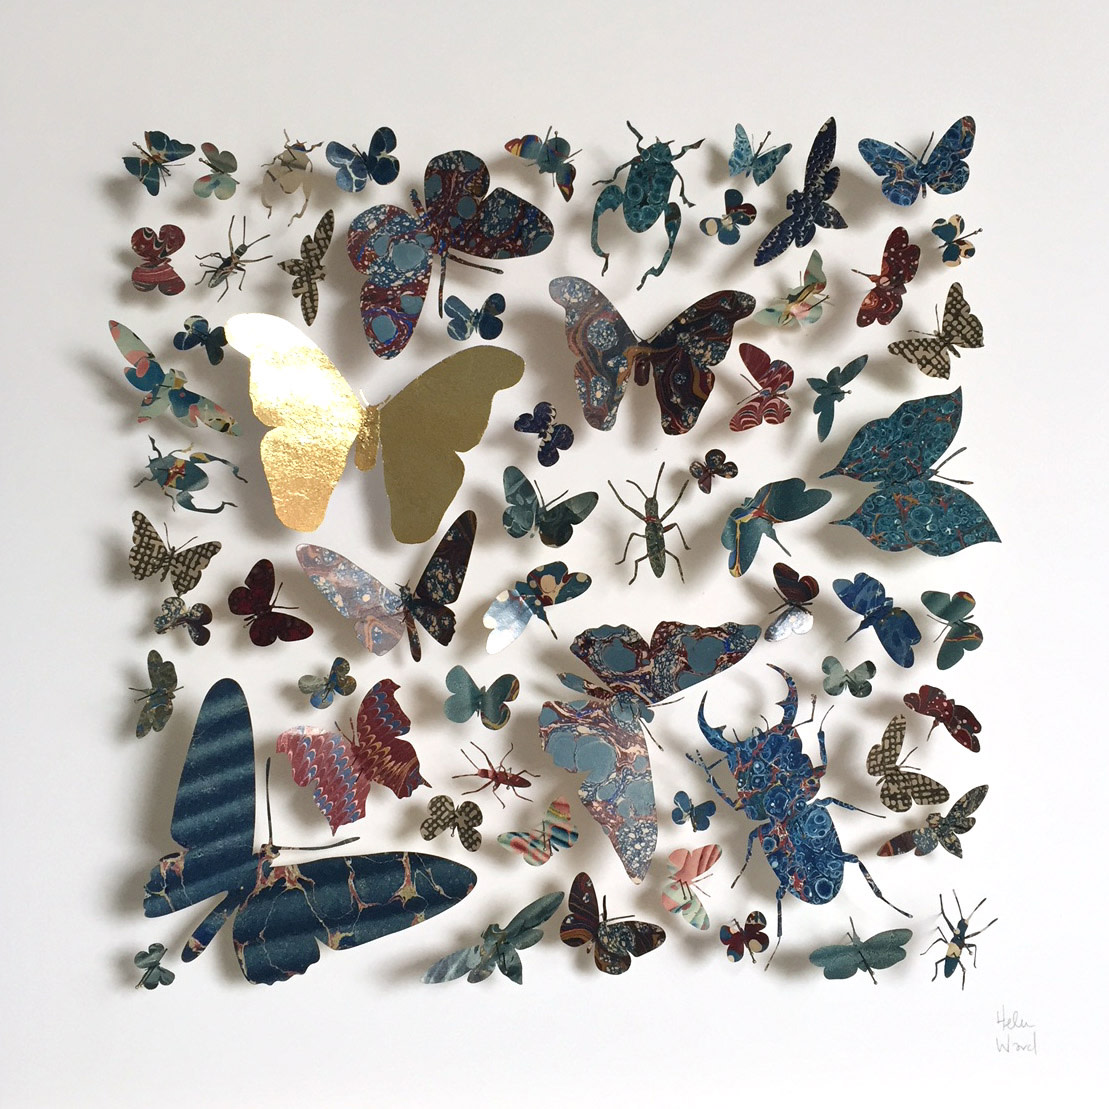 <span class=&#34;link fancybox-details-link&#34;><a href=&#34;/artists/142-helen-ward/works/6240-helen-ward-morpho-square-3-2019/&#34;>View Detail Page</a></span><div class=&#34;artist&#34;><strong>Helen Ward</strong></div> <div class=&#34;title&#34;><em>Morpho Square 3</em>, 2019</div> <div class=&#34;medium&#34;>Victorian entomology drawer, hand-marbled papers, gold leaf, enamel pins</div> <div class=&#34;dimensions&#34;>40 x 40 cm</div><div class=&#34;price&#34;>£680.00</div><div class=&#34;copyright_line&#34;>Own Art: £ 68 x 10 Monthly 0% APR Representative Payments</div>